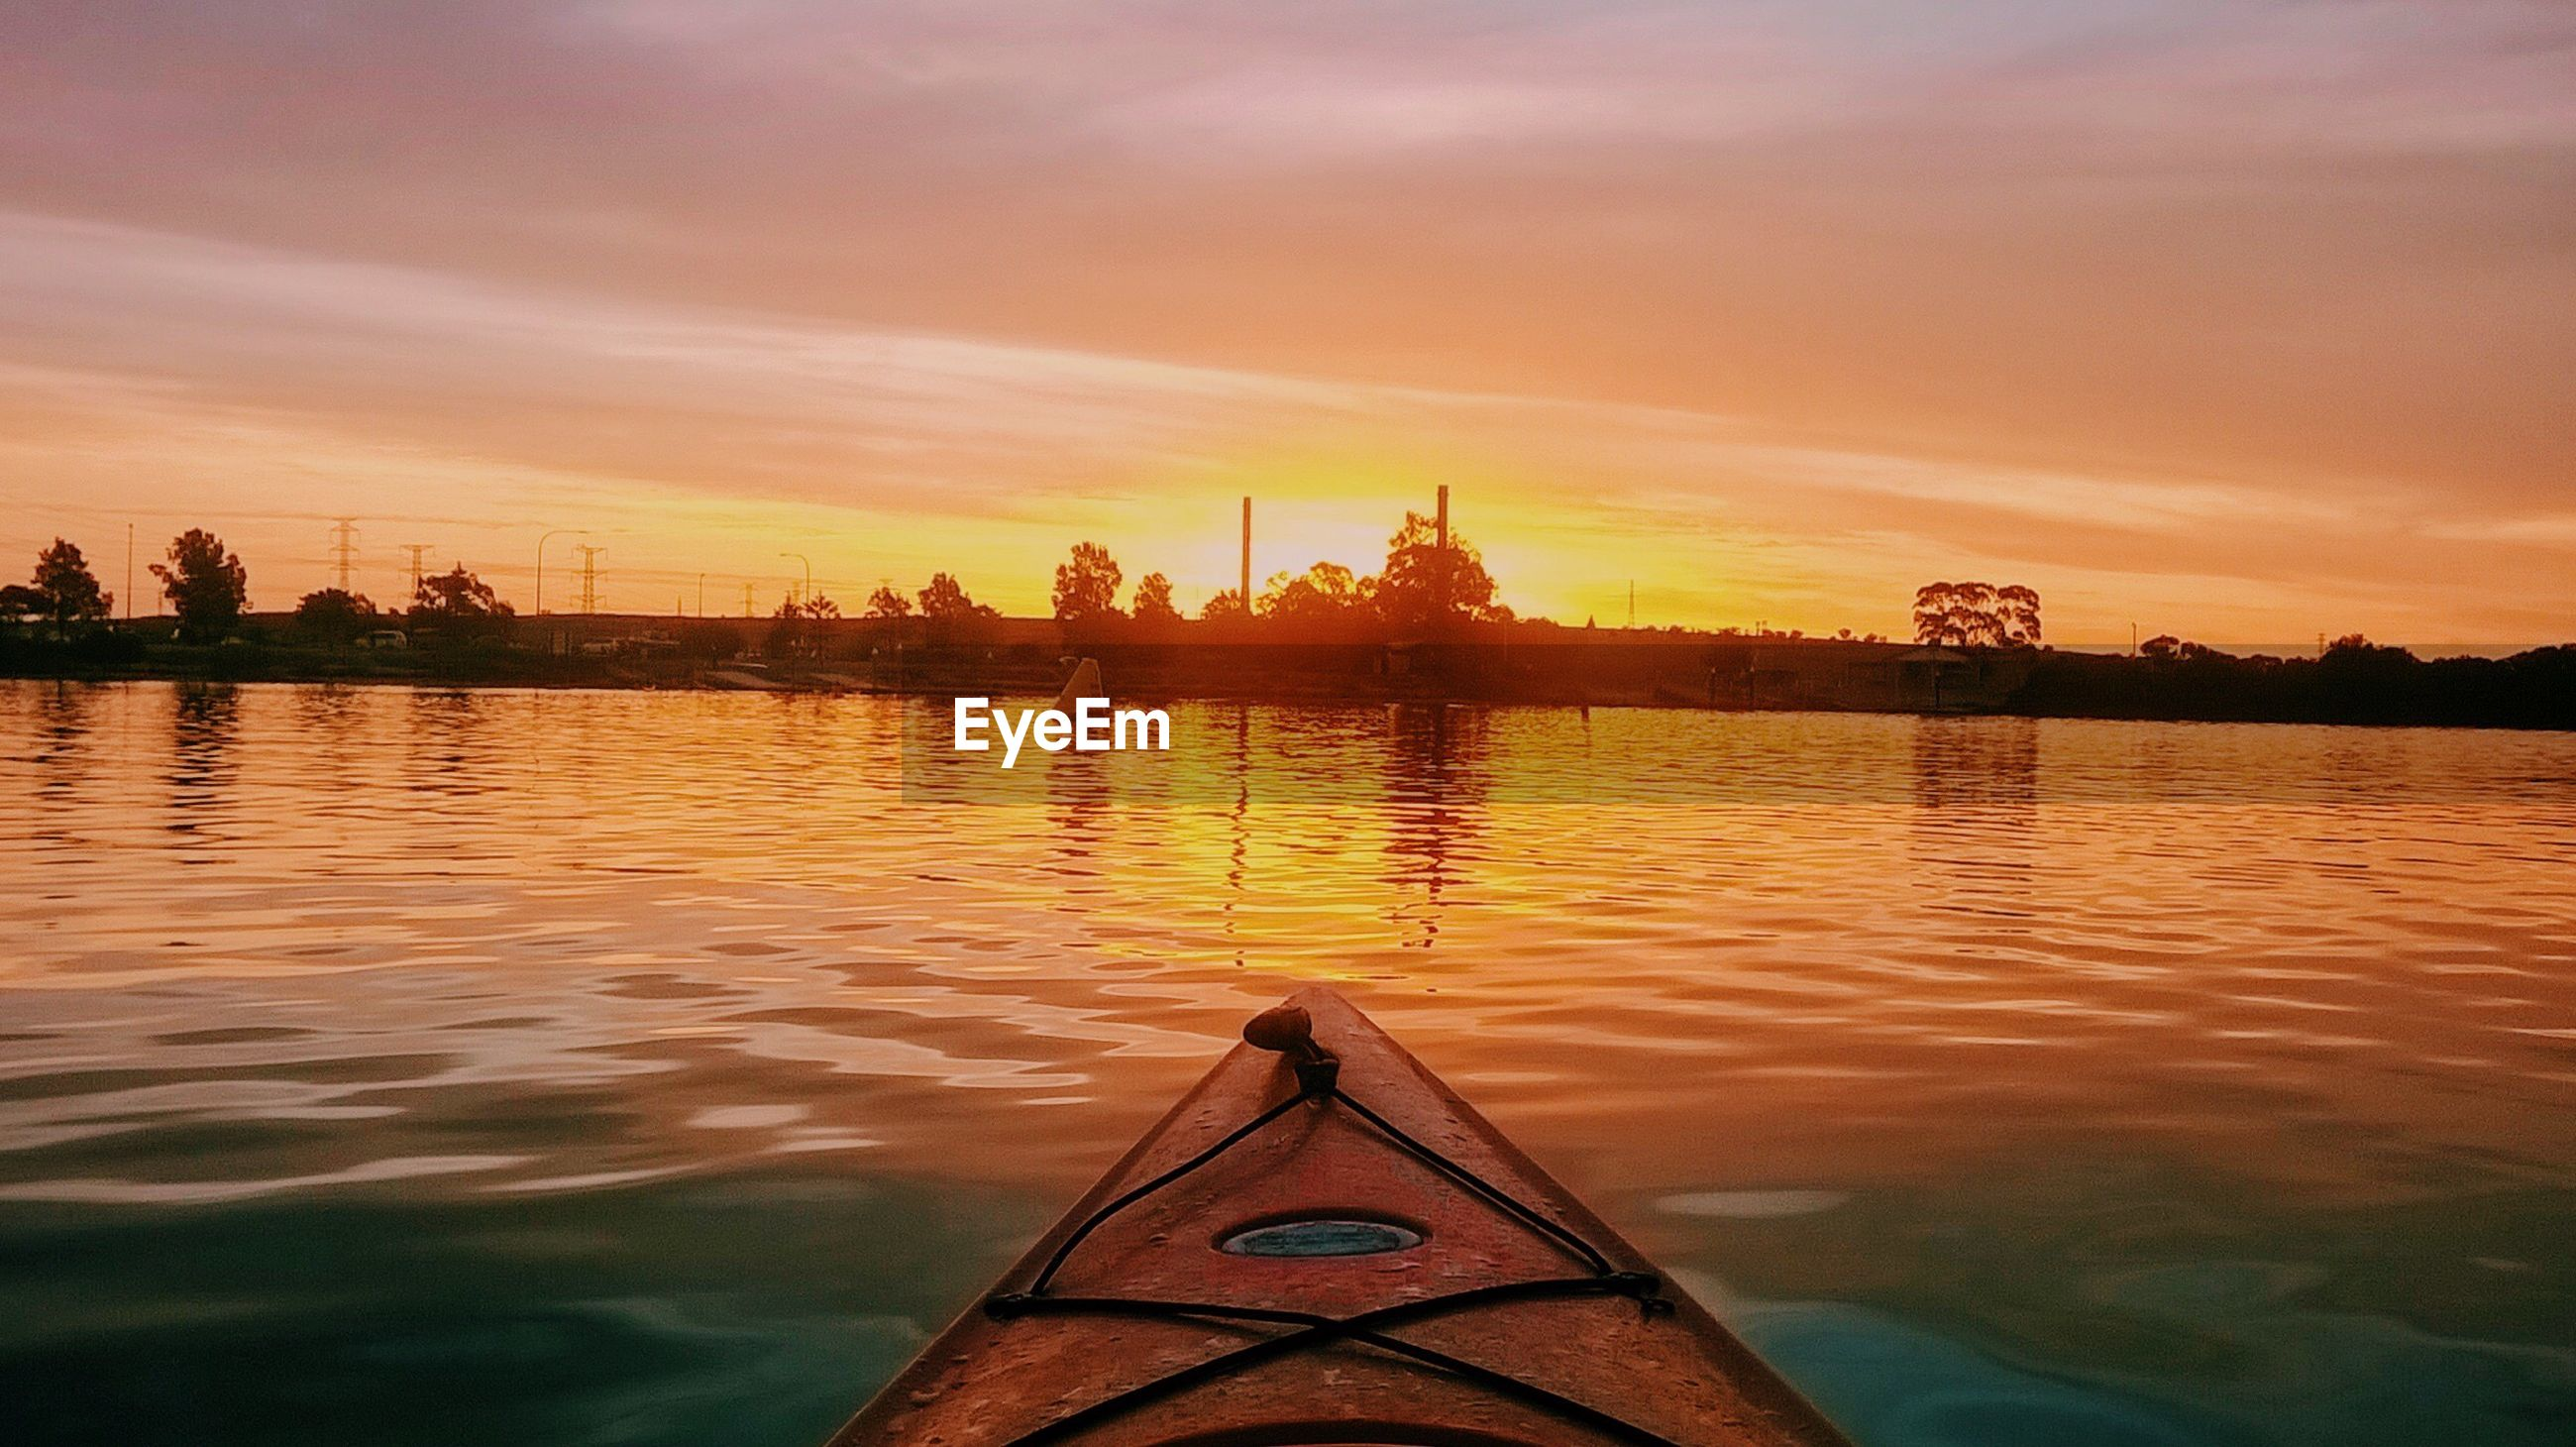 Point of view image of boat in sea against sky during sunset